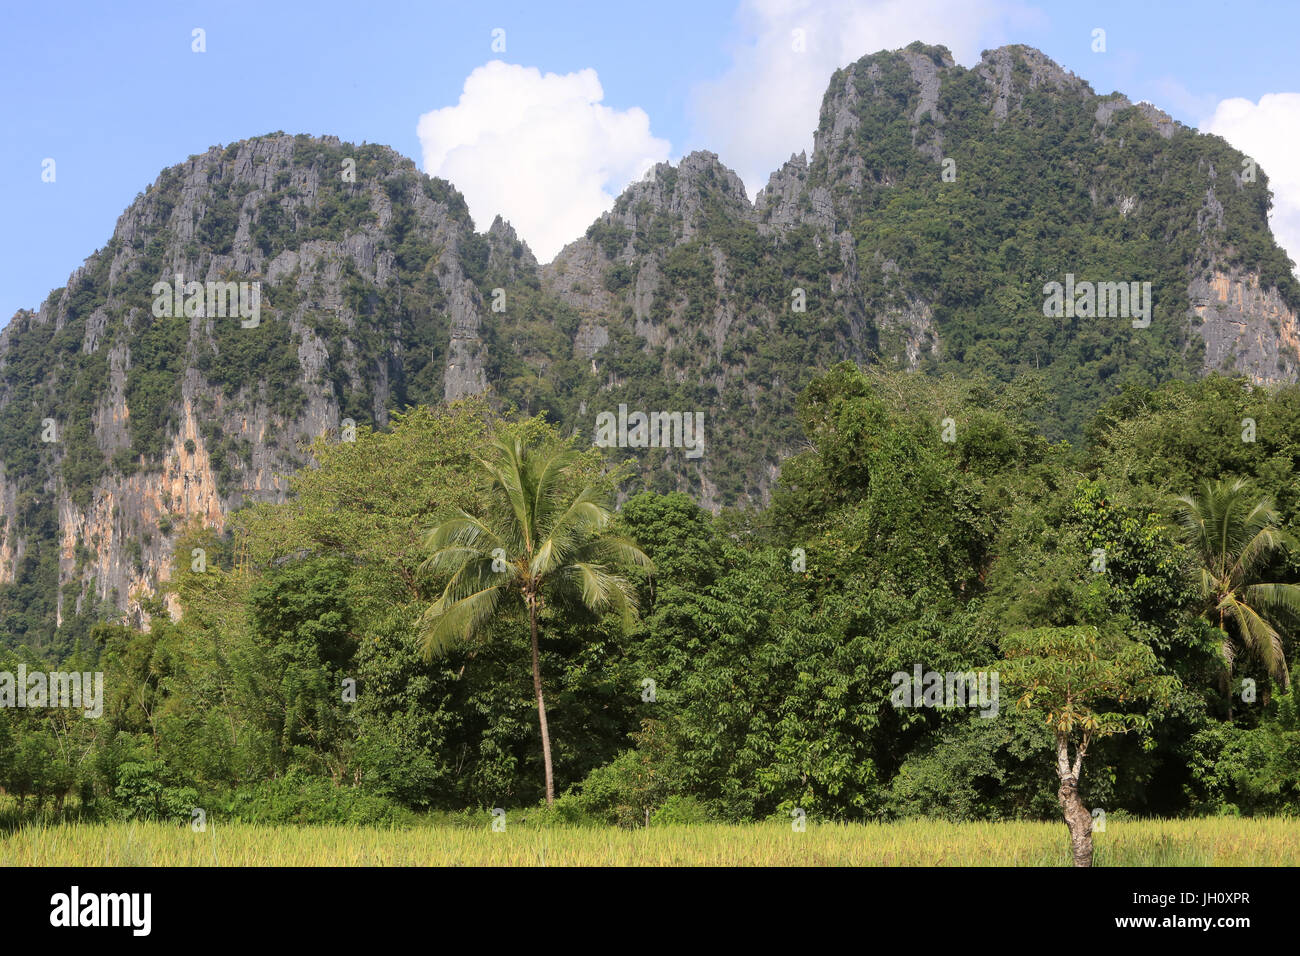 Mountainsides in rural Laos near the town of Vang Vieng. Laos. - Stock Image